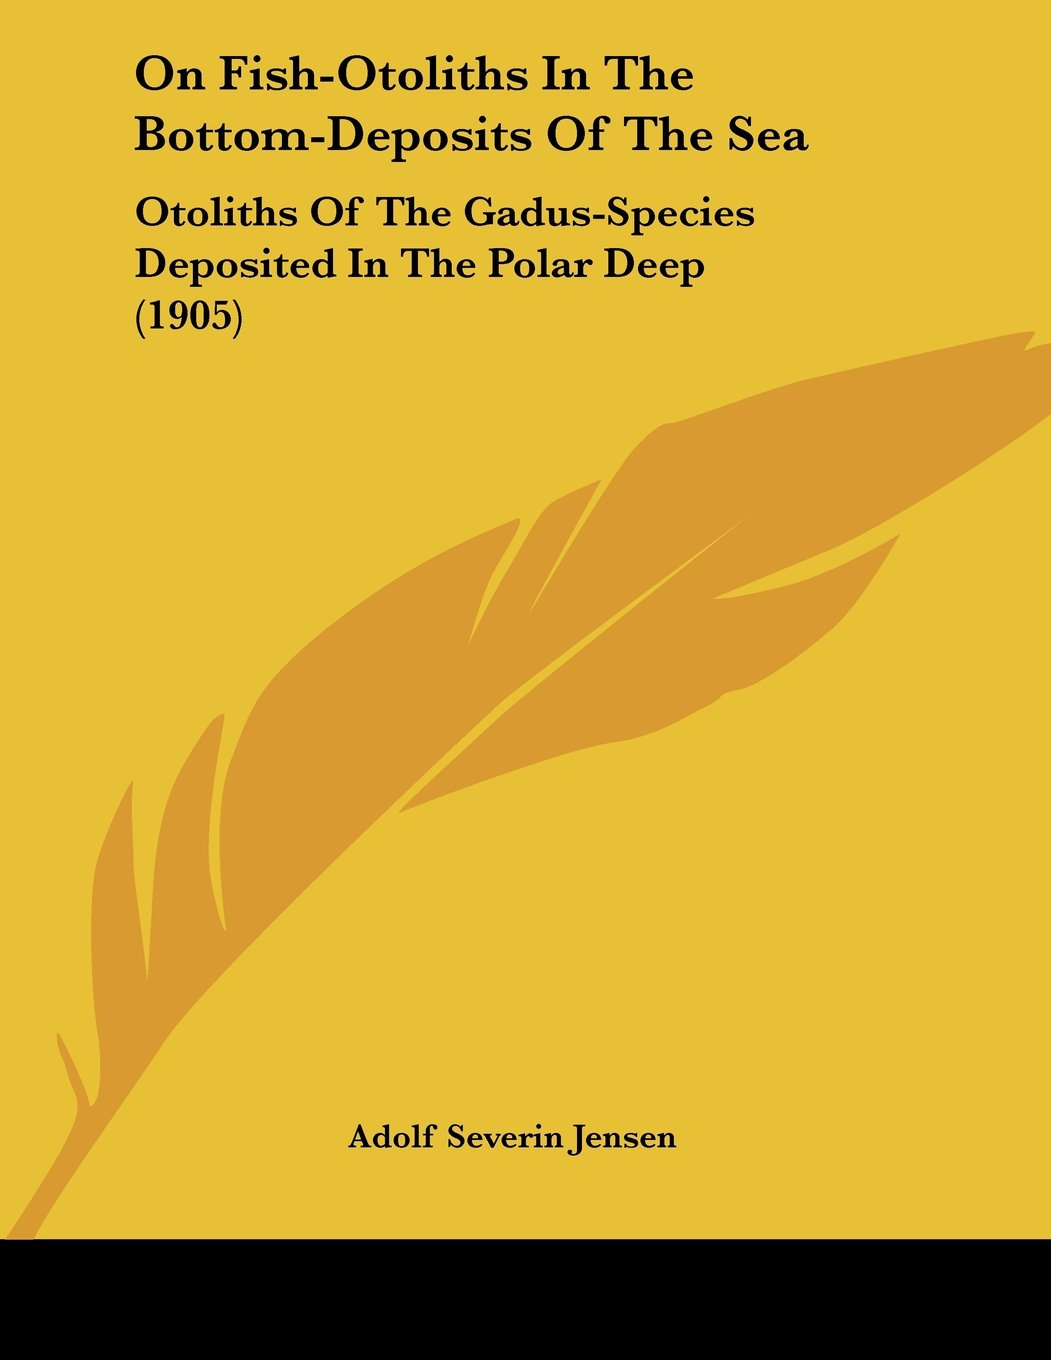 Download On Fish-Otoliths In The Bottom-Deposits Of The Sea: Otoliths Of The Gadus-Species Deposited In The Polar Deep (1905) pdf